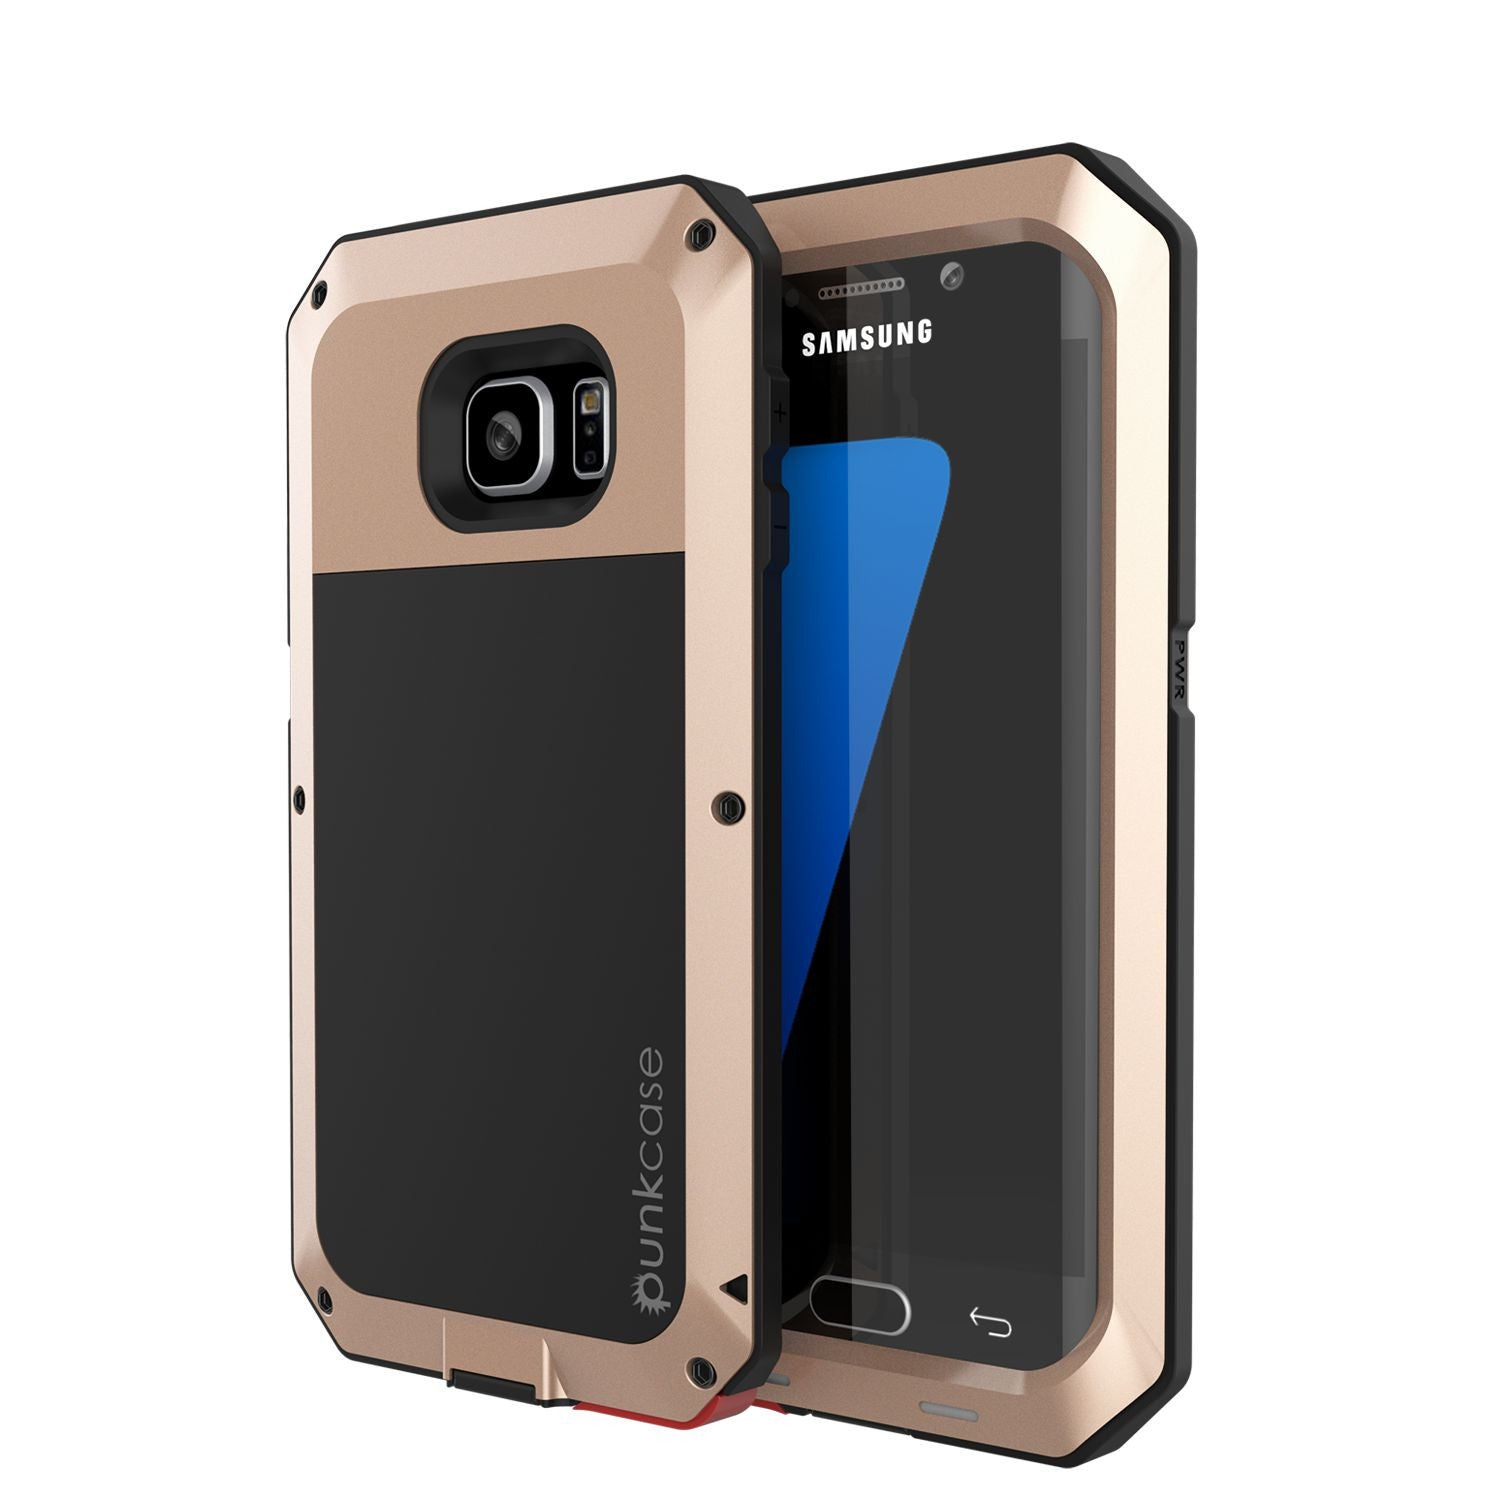 PUNKCASE - Metallic Series Shockproof Armor Case for Samsung S7 Edge | Gold